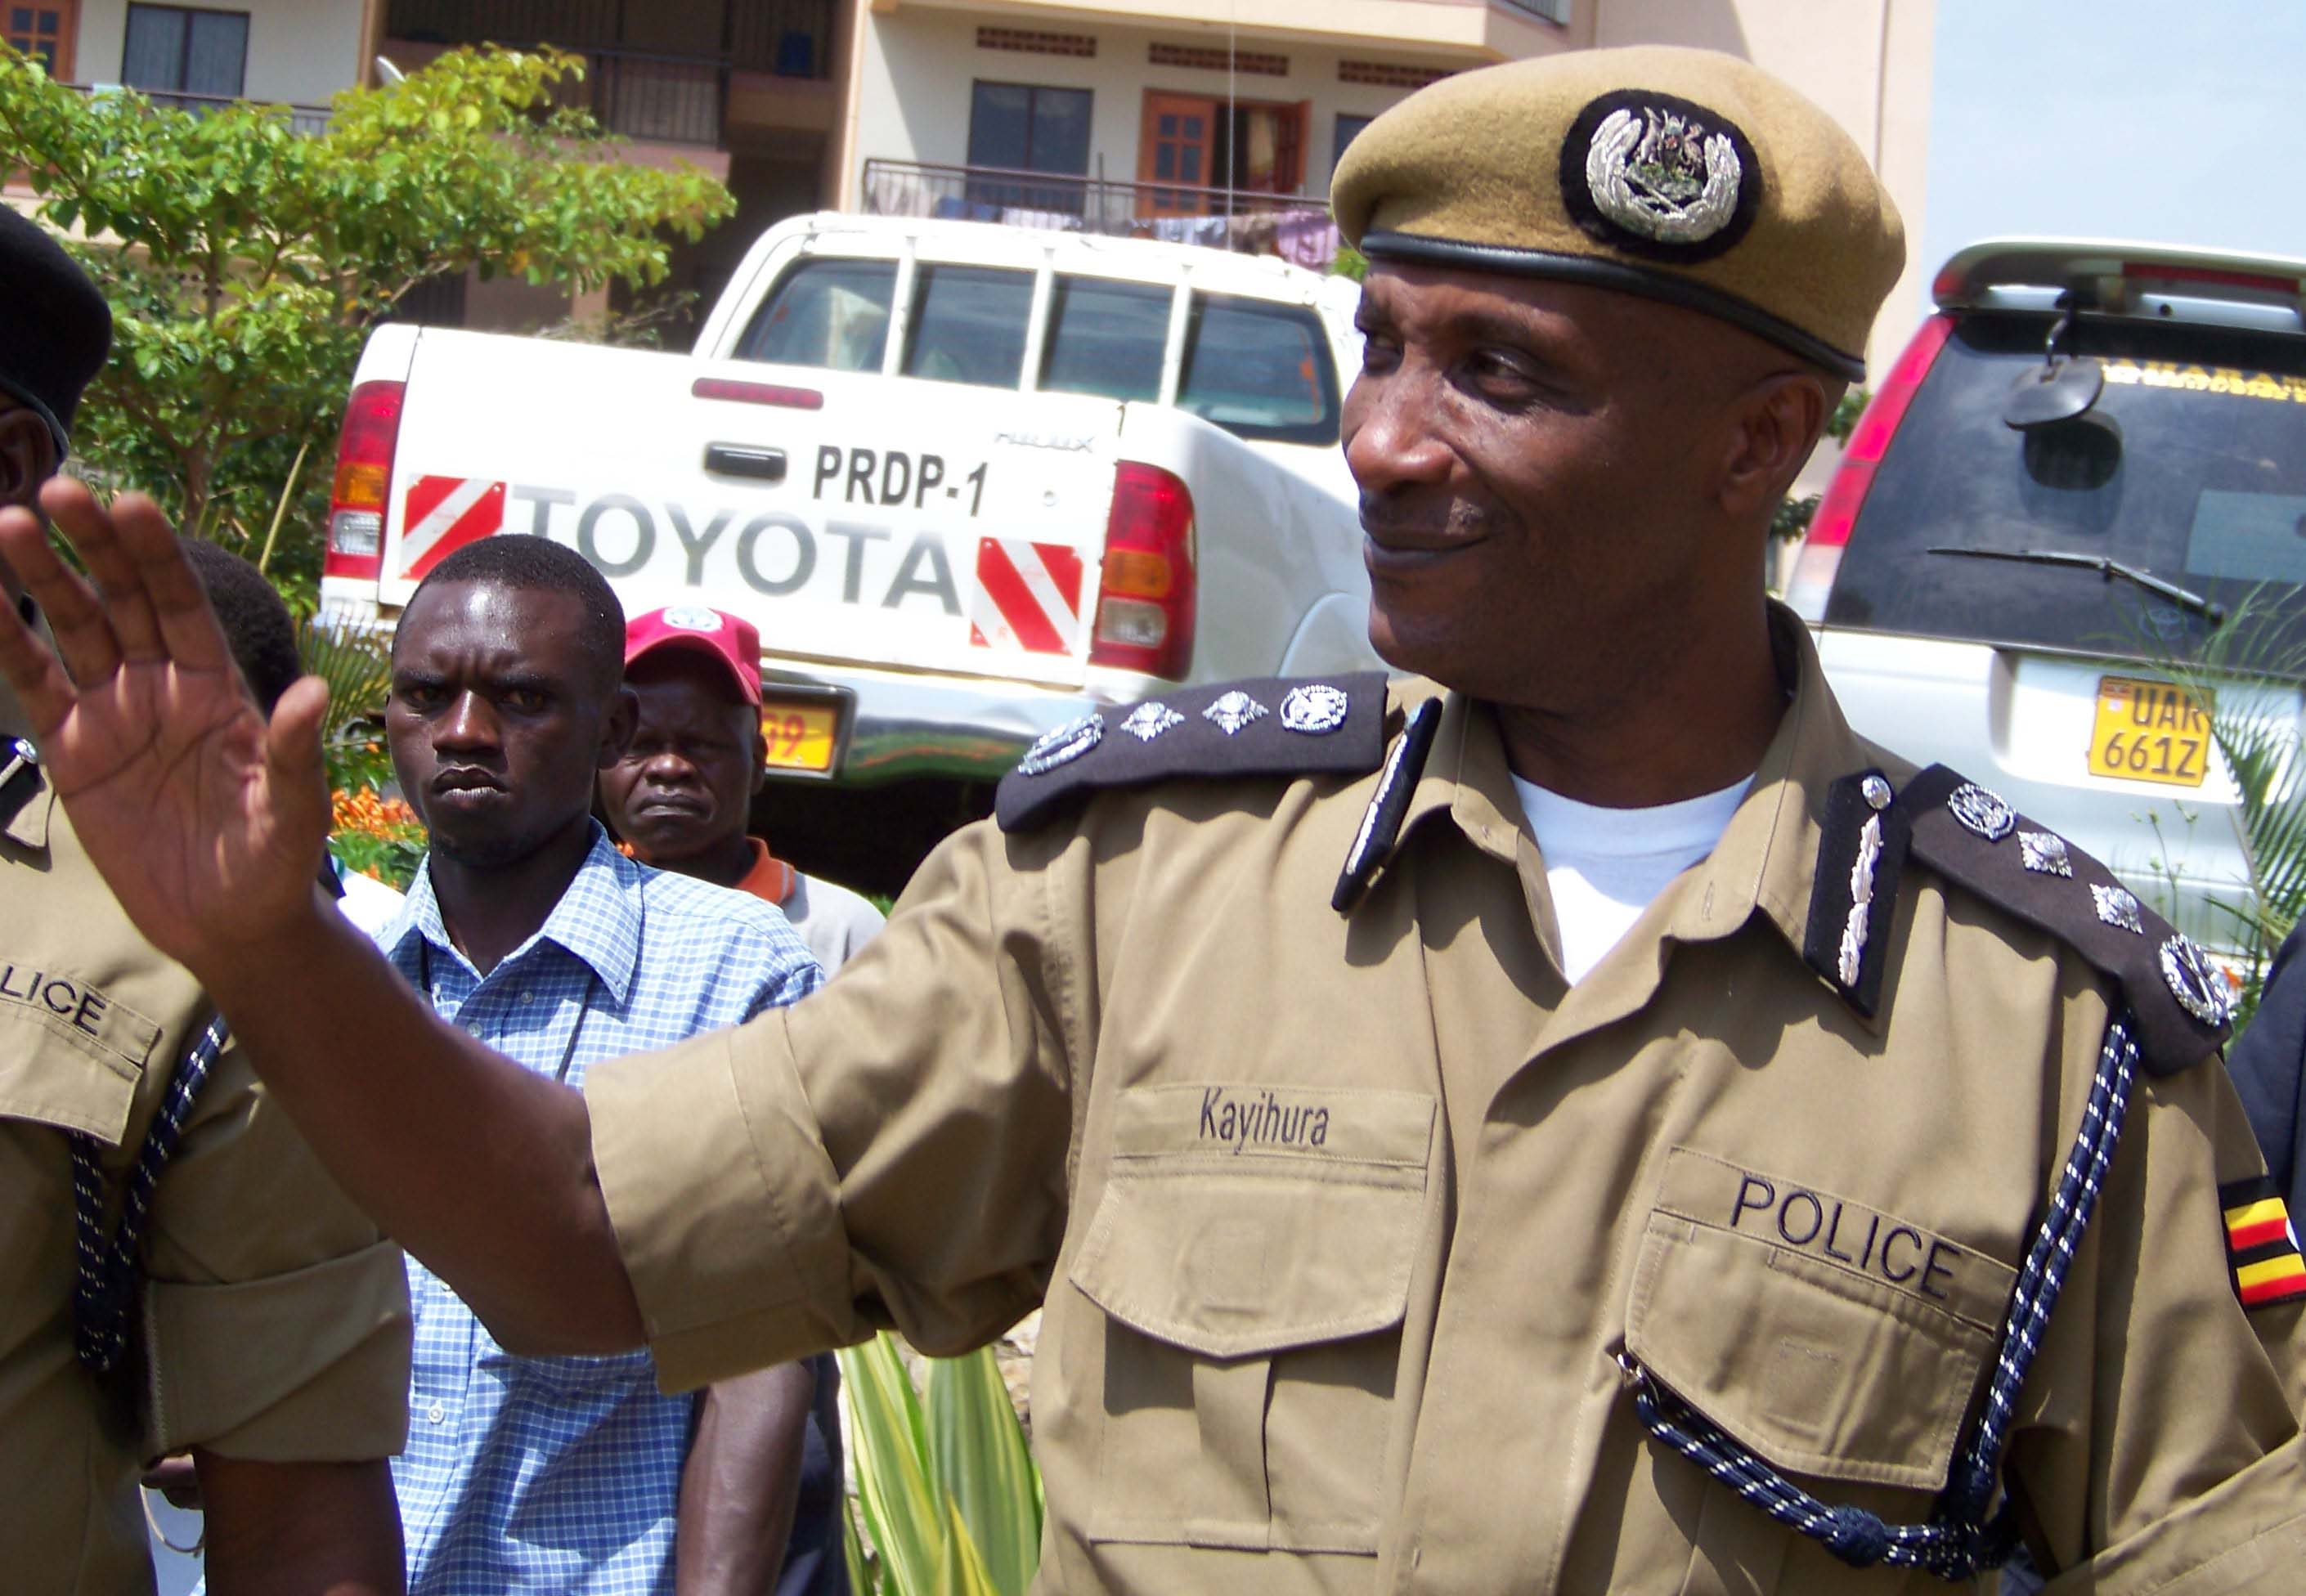 Uganda's notorious police chief leaves behind a grim legacy ...